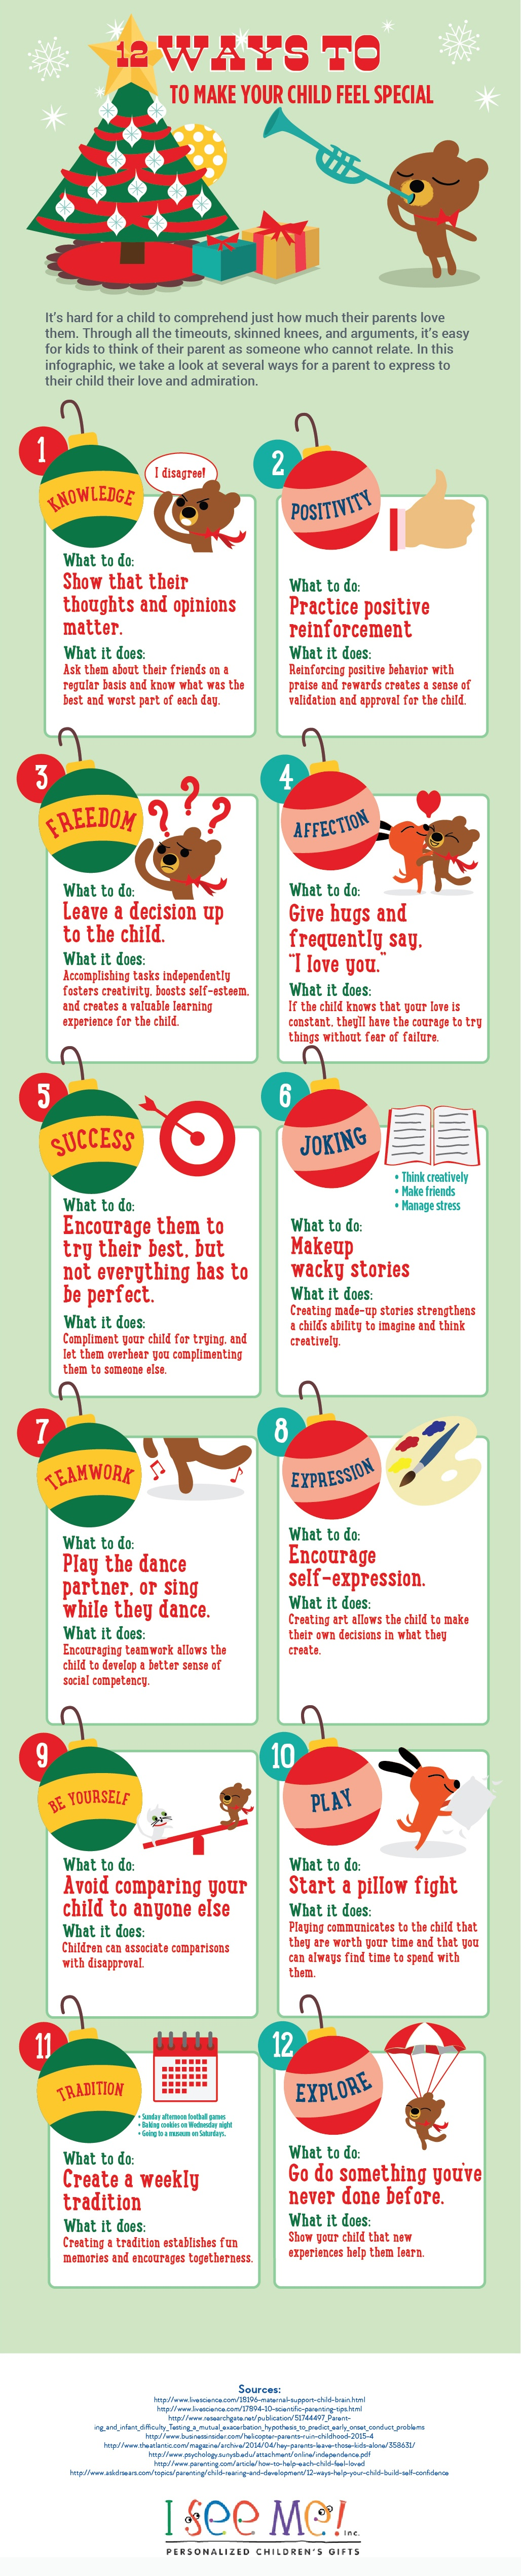 12 Ways to Make Your Child Feel Special Infographic